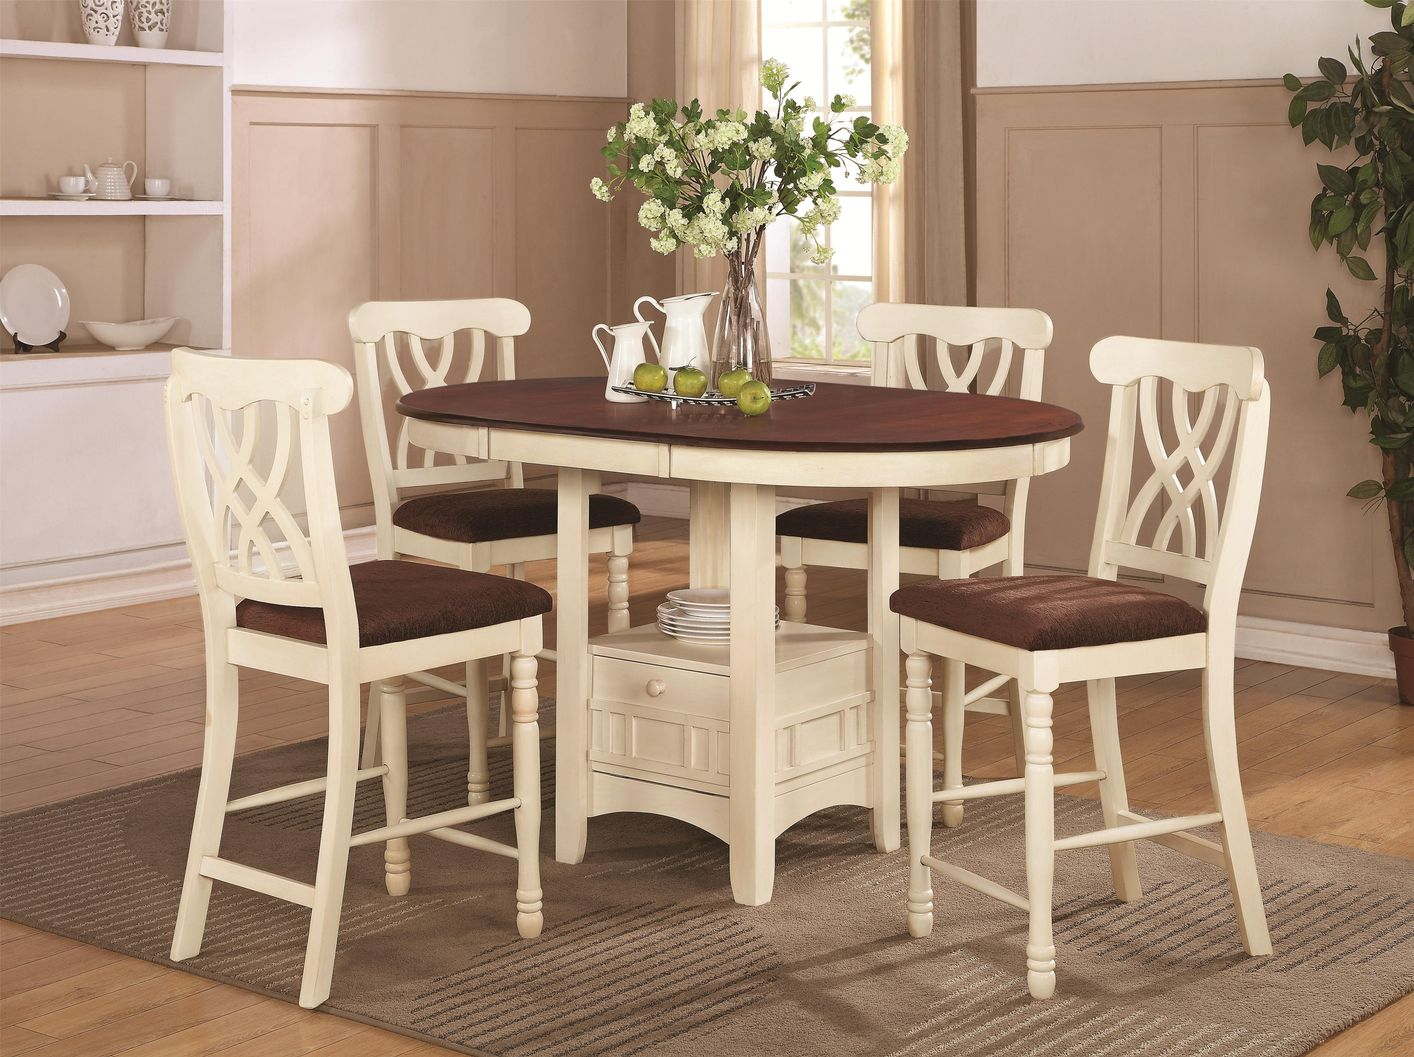 Coaster Addison 102238 102239 White Wood Pub Table Set In